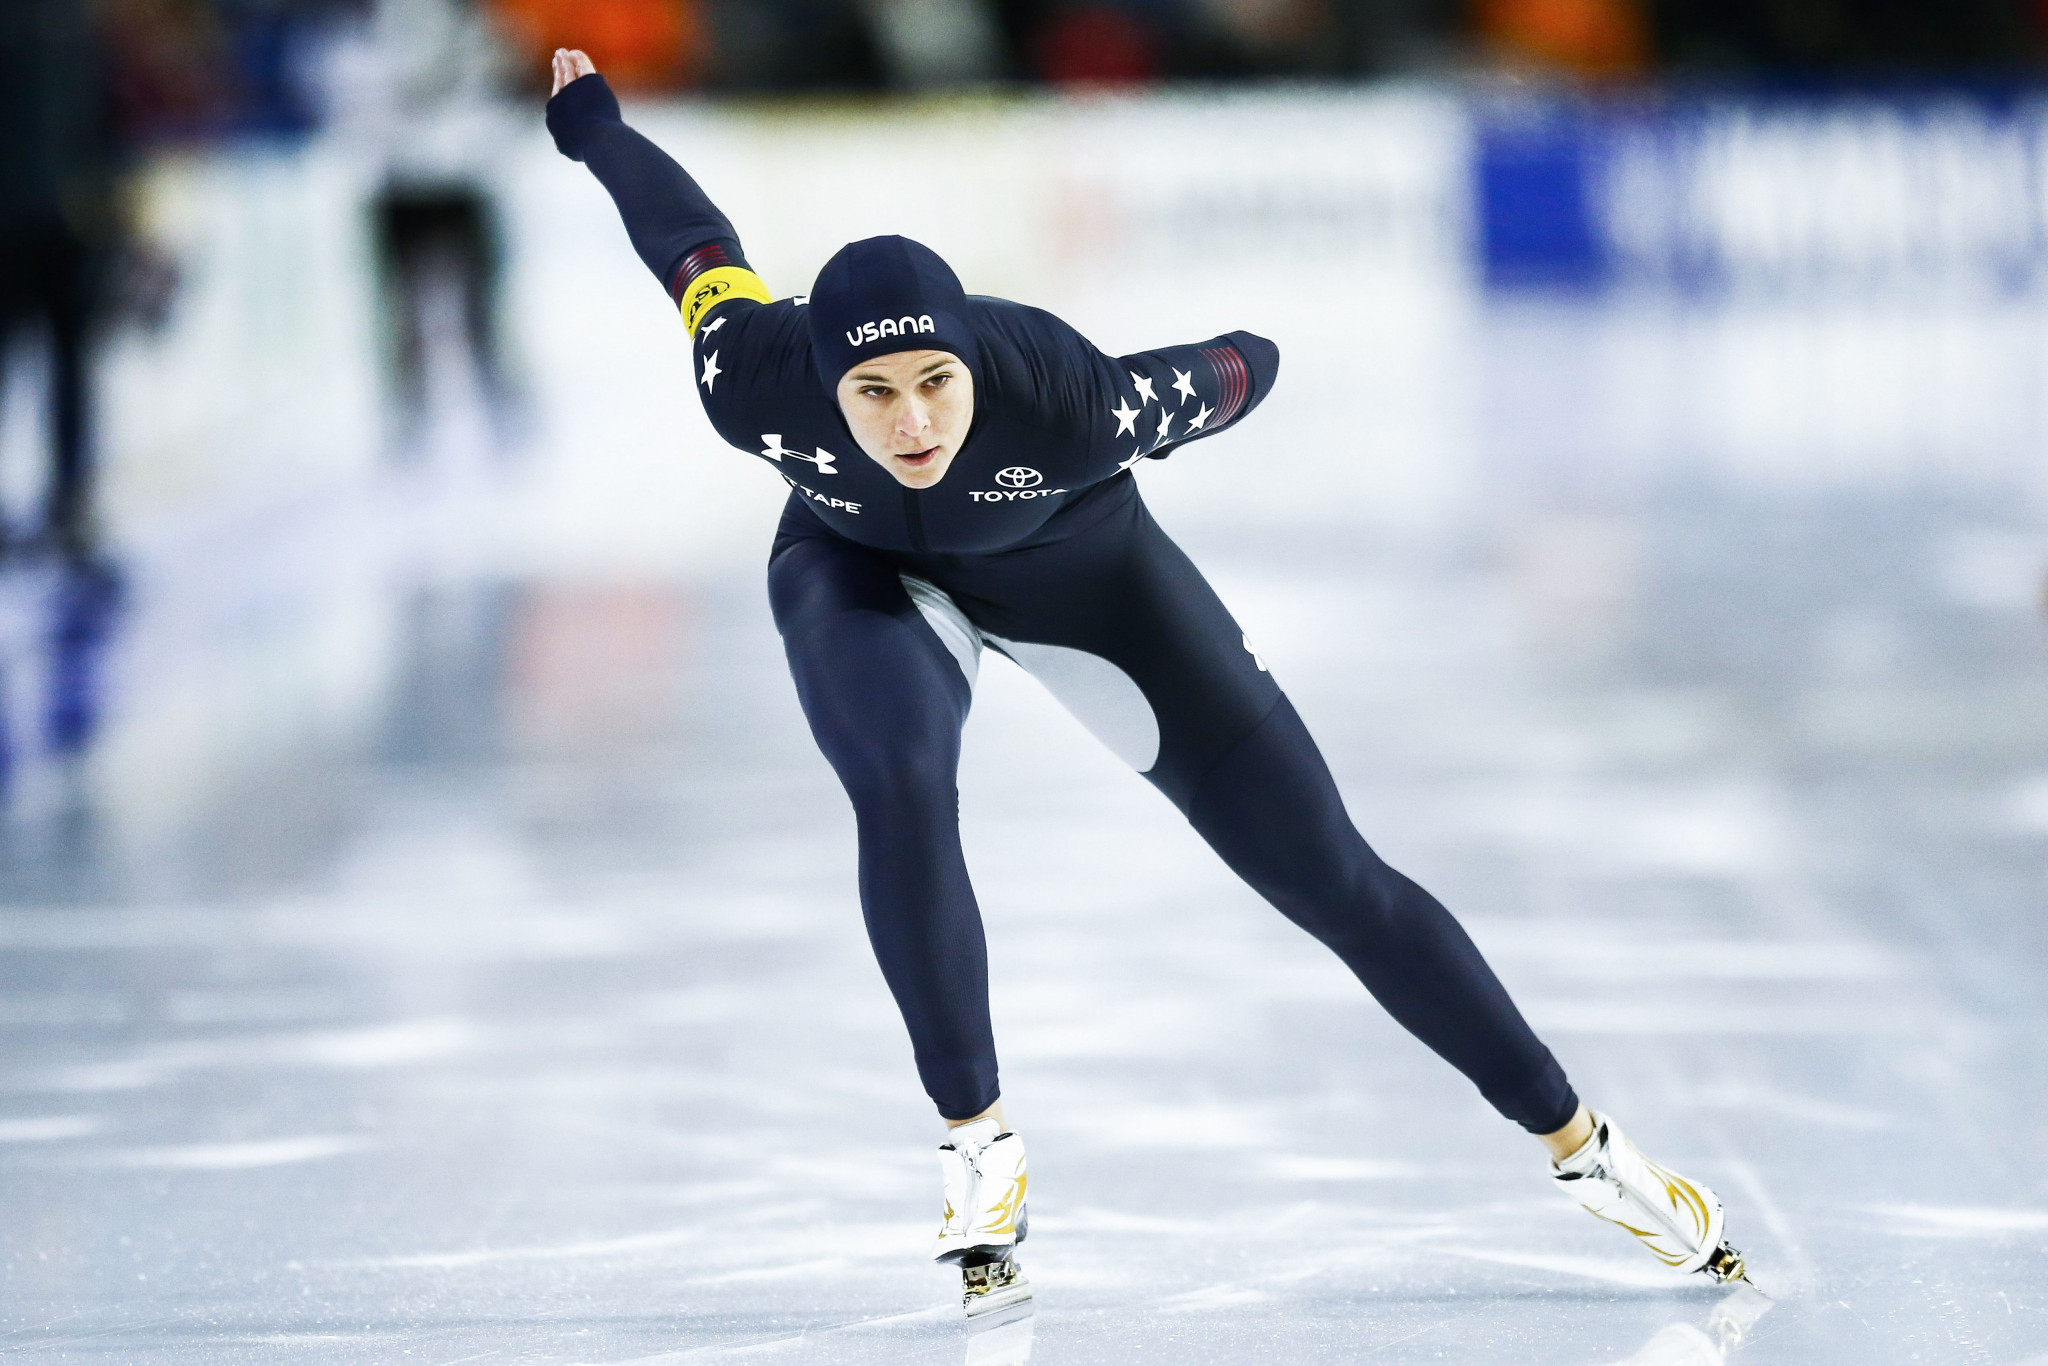 Bowe wins second gold of ISU Speed Skating World Cup in Hamar